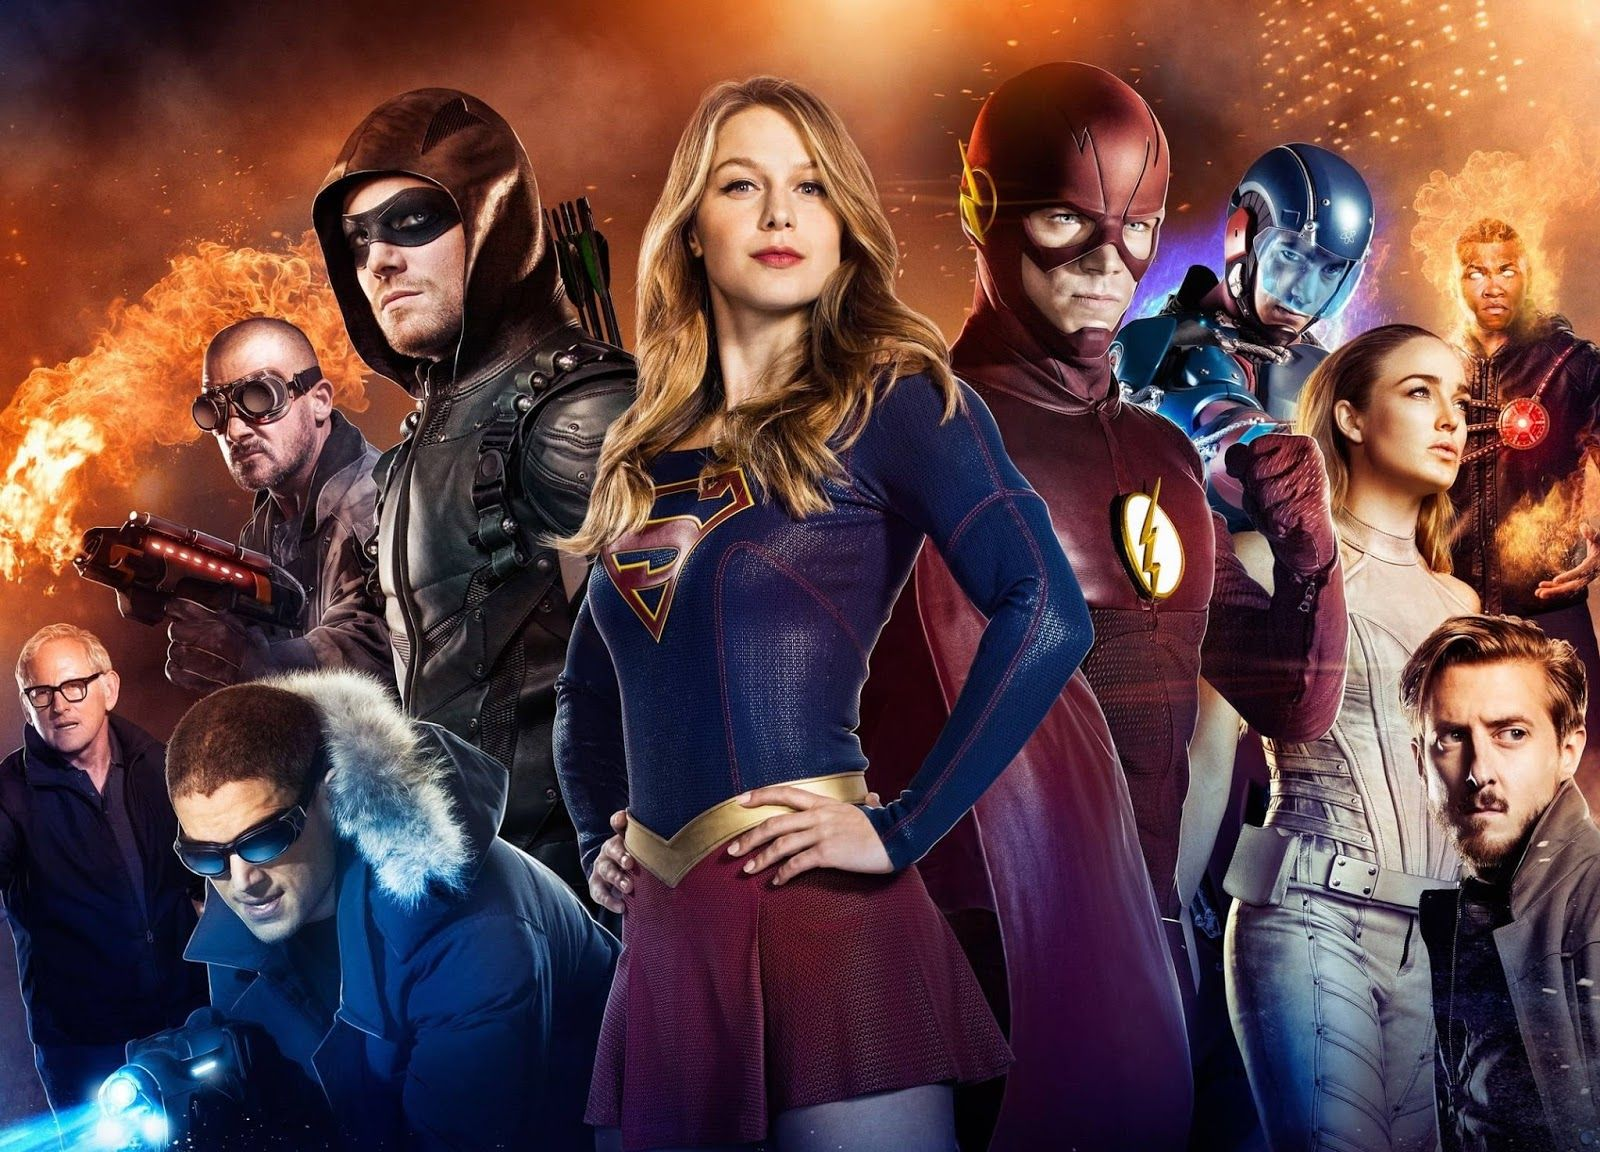 What Is The Proper Viewing Order For Arrow The Flash